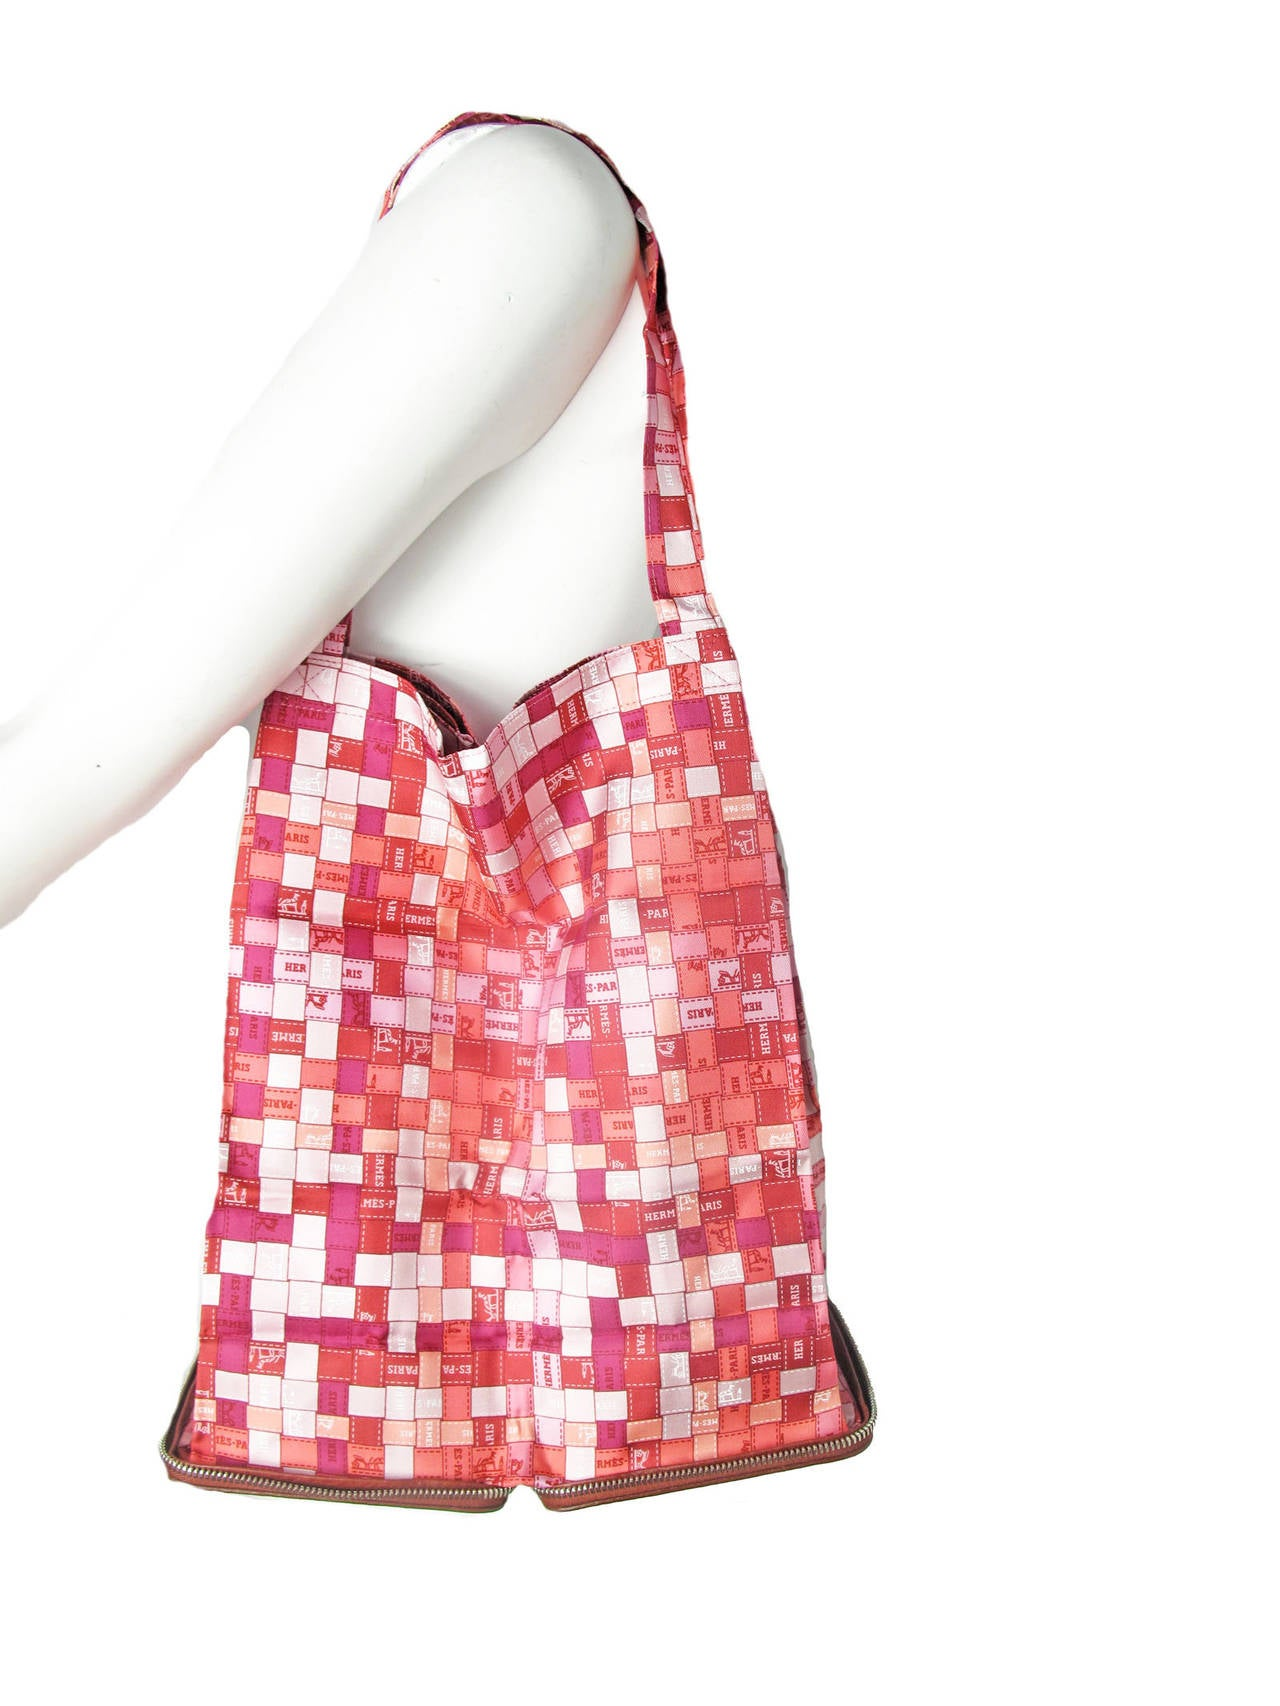 Rare Hermes Bolduc Print Shopper Tote Collapsible Leather Zippered Bag - sale 3